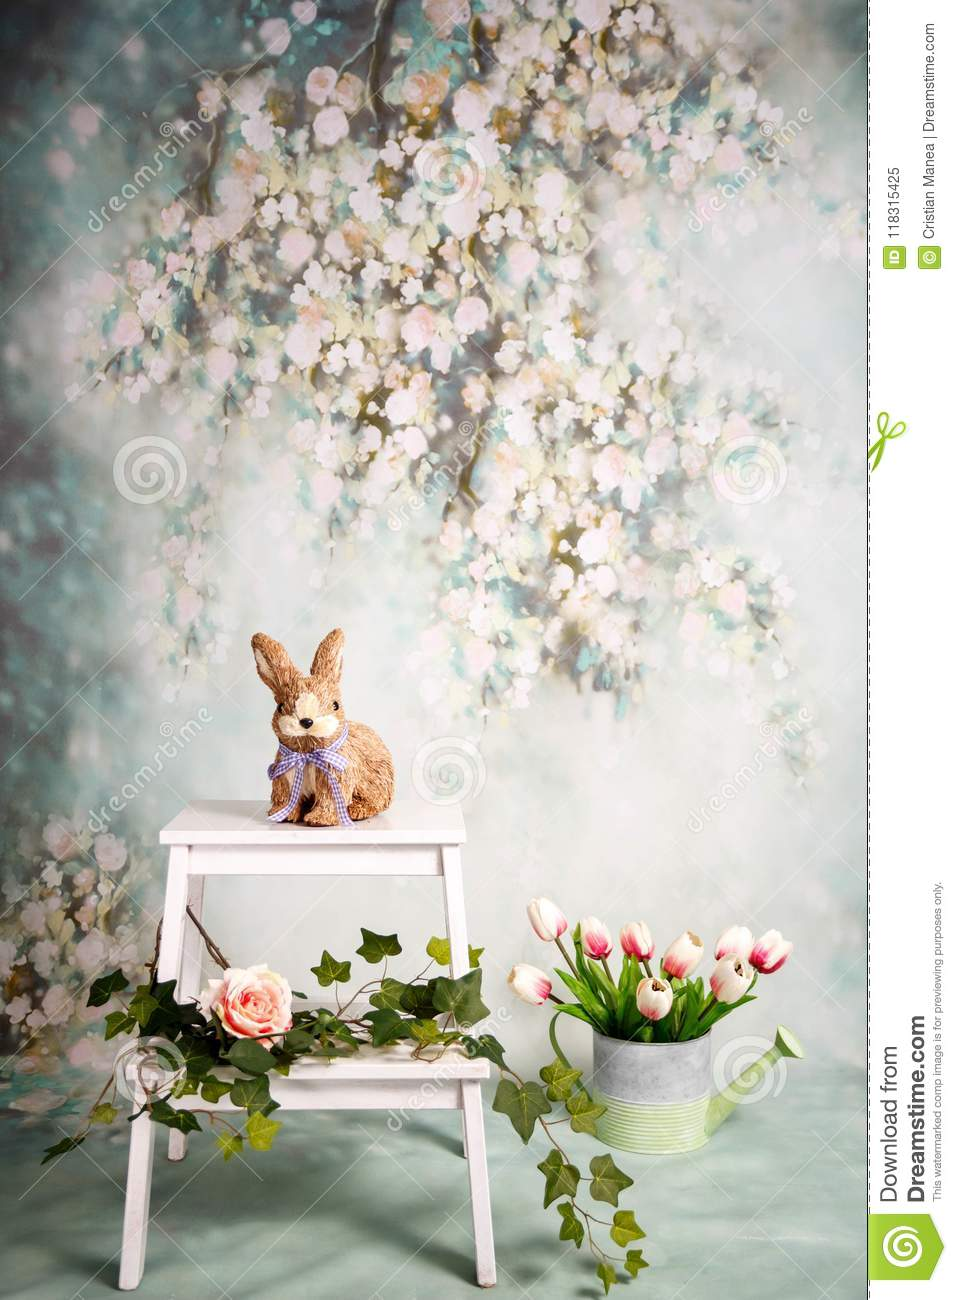 Spring background with pink and white flowers, romantic style